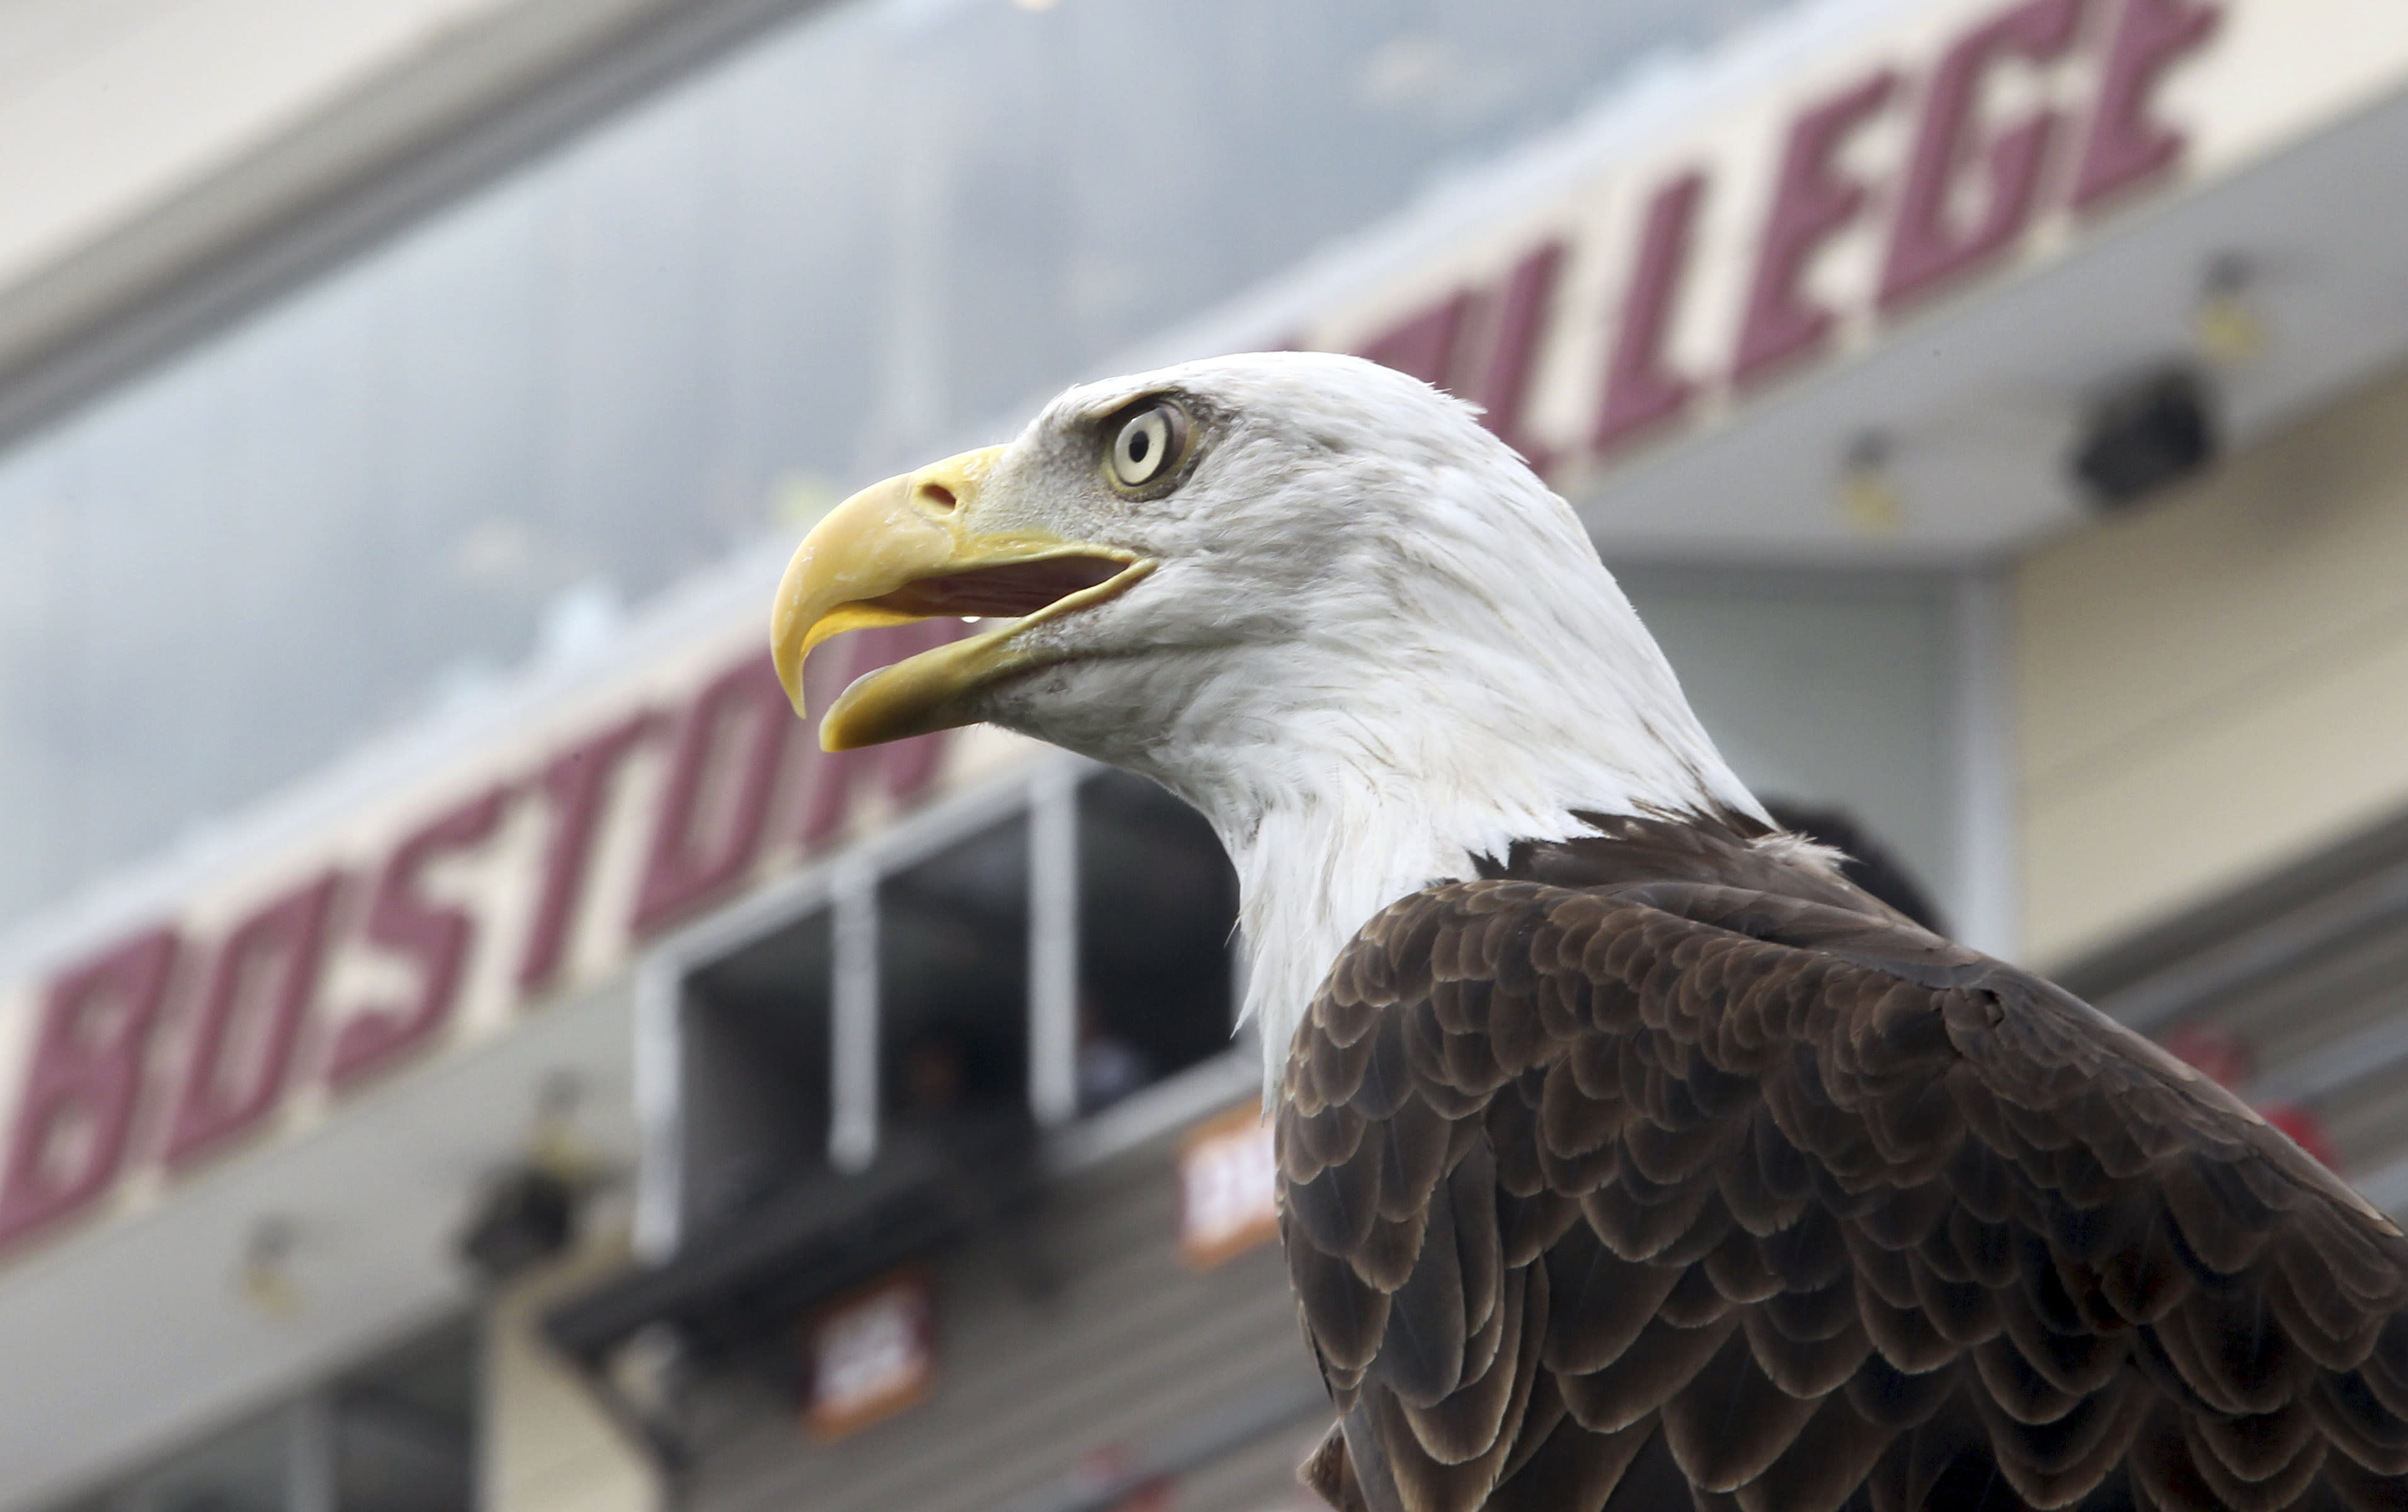 In Boston area, the bald eagle population is soaring